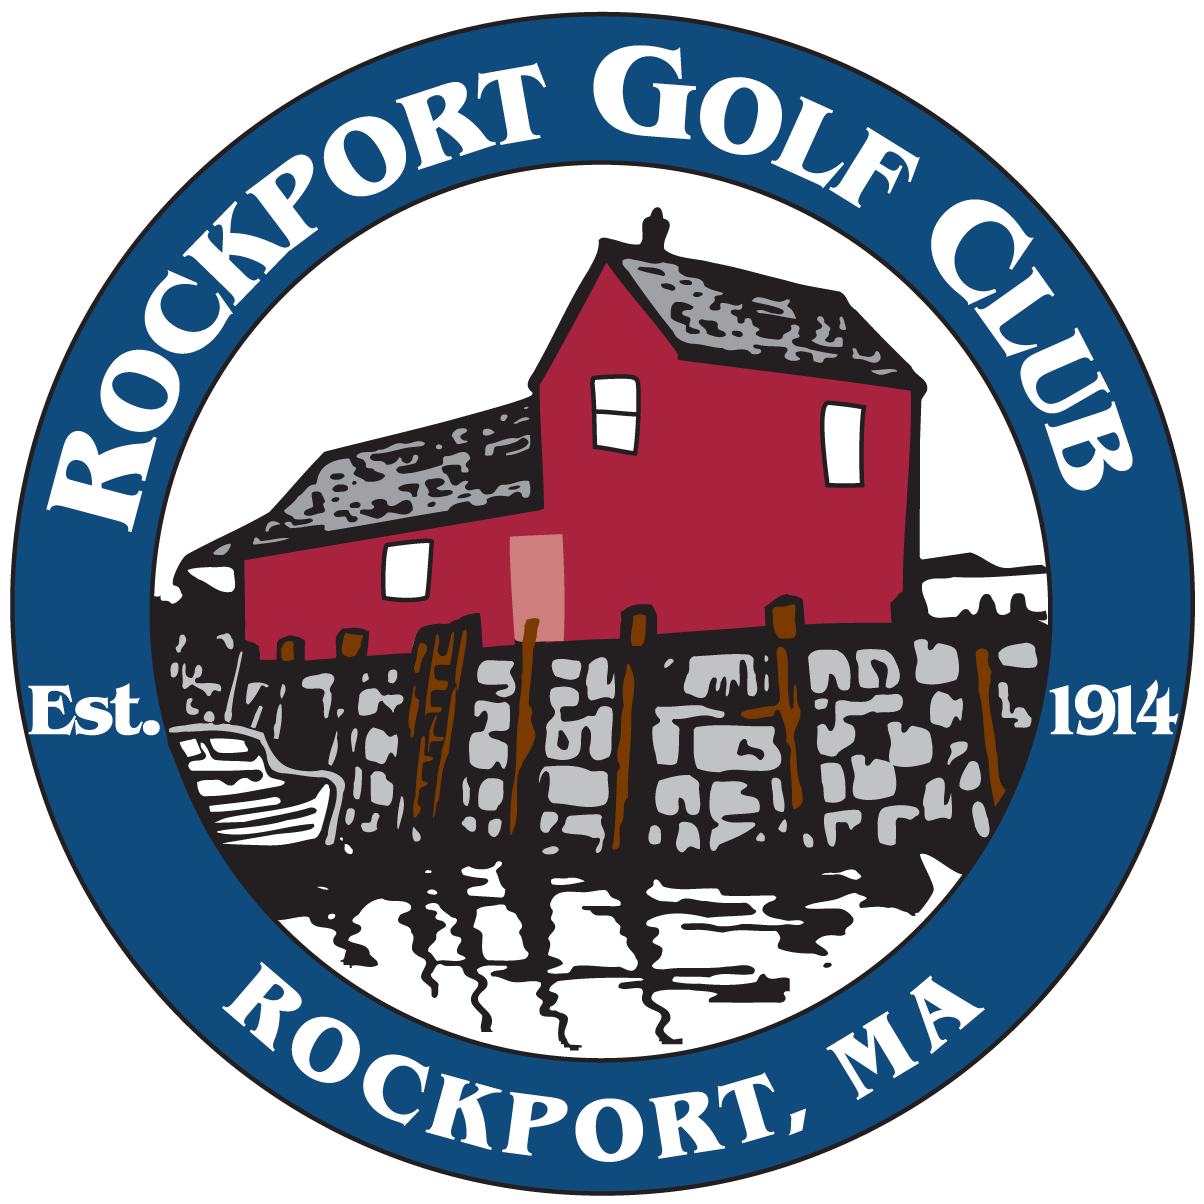 Rockport Golf Club